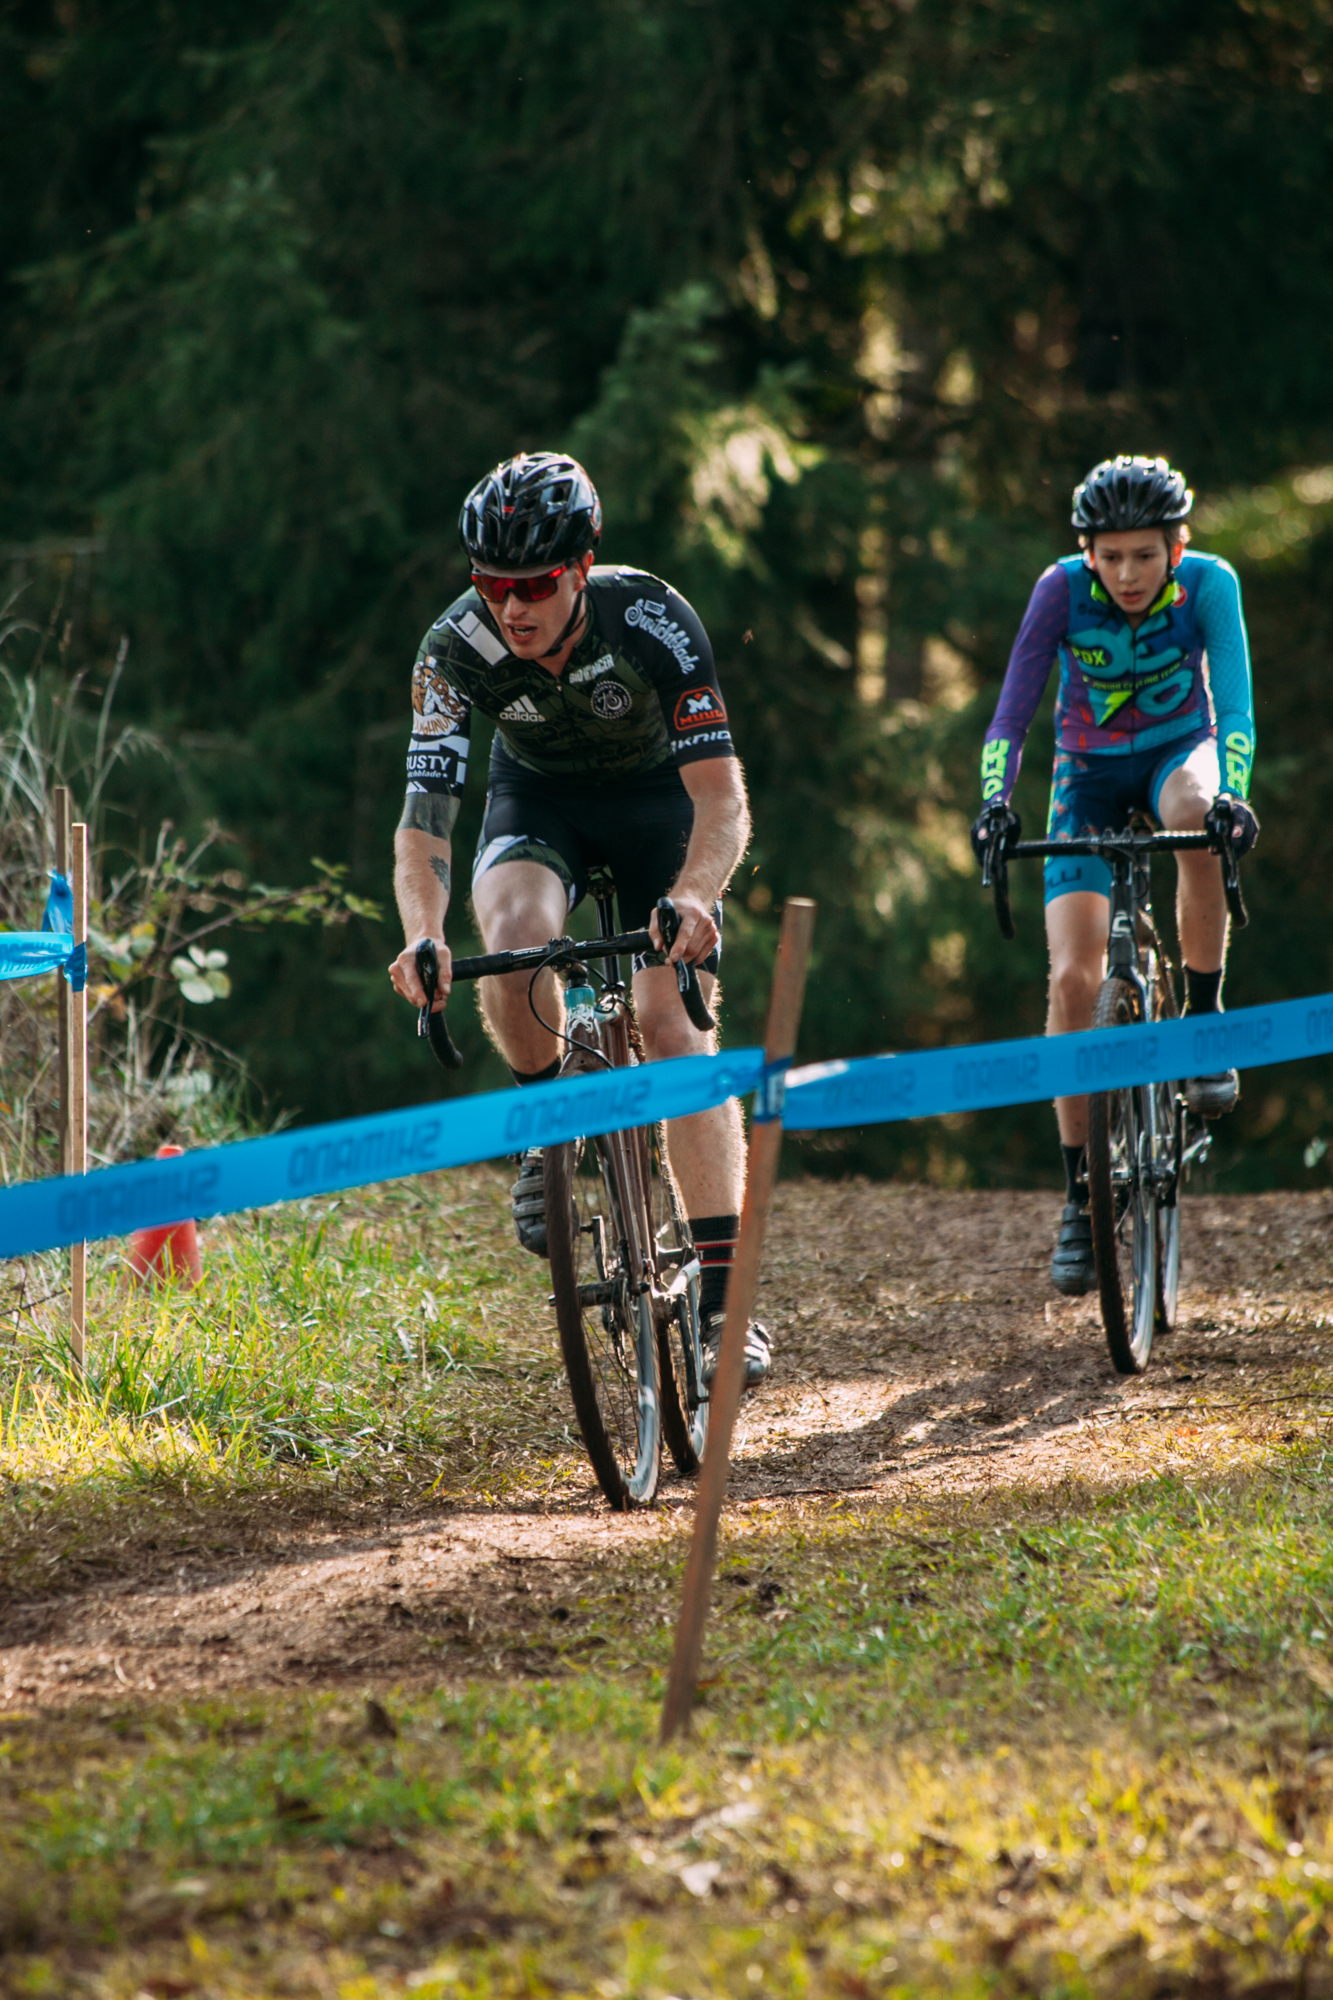 Cyclocross18_CCCX_RainierHS-159-mettlecycling.jpg